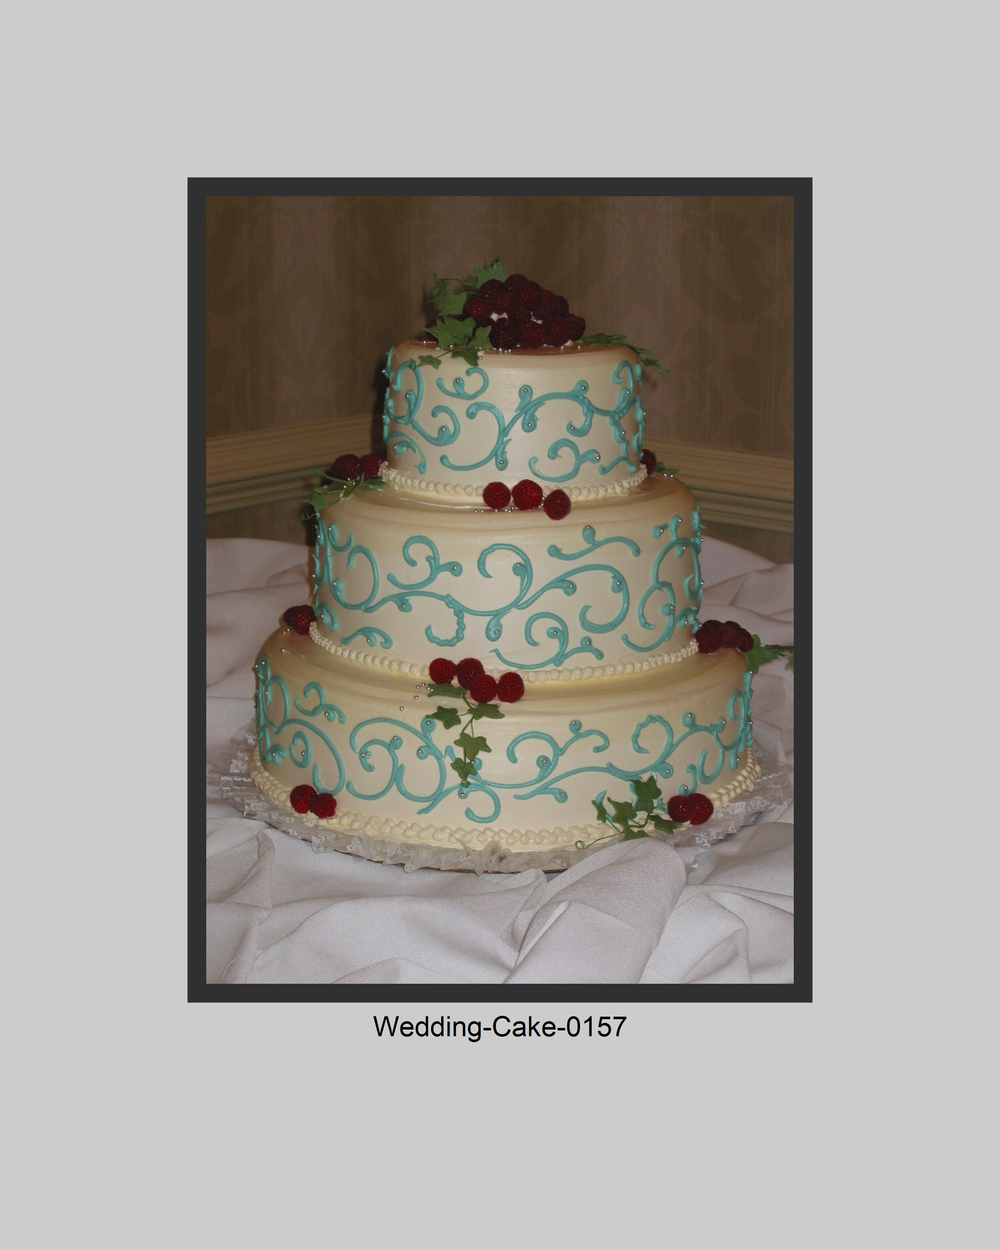 Wedding-Cake-Prints-0157.jpg